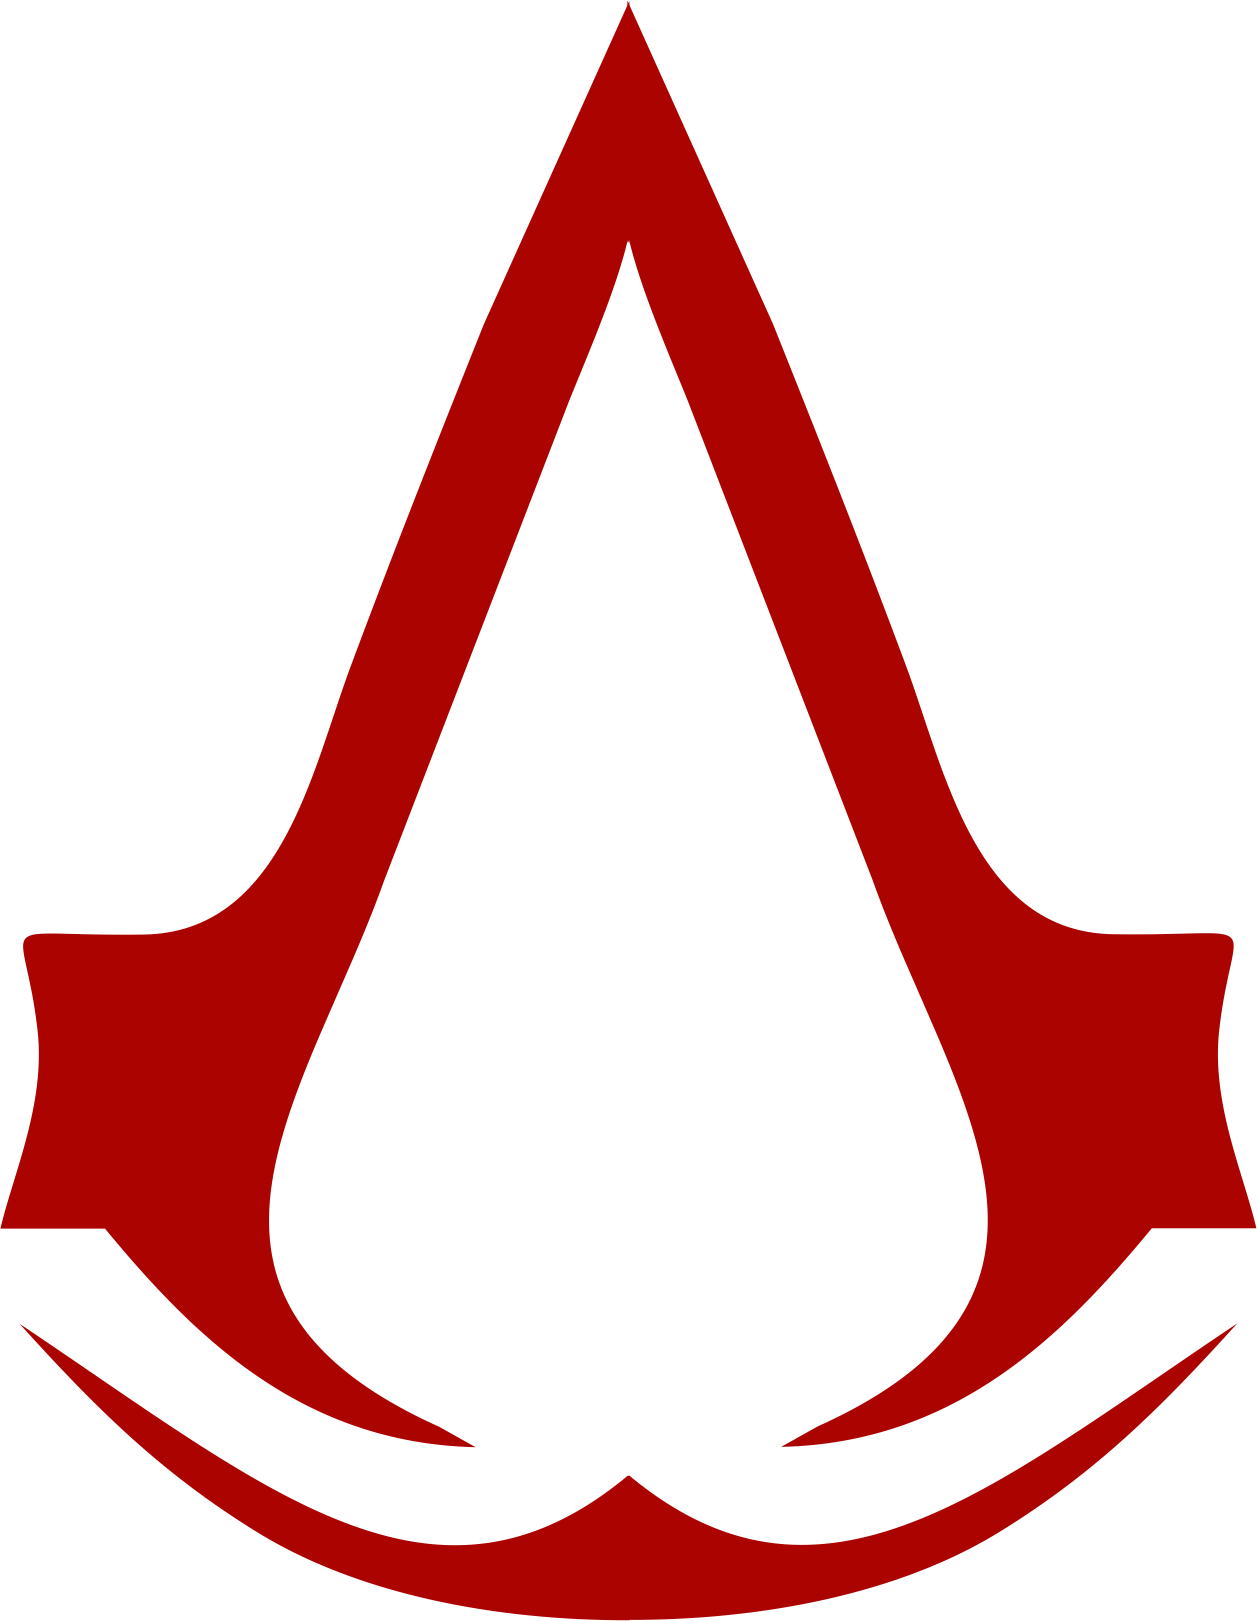 Assassins Creed logo PNG HD by Mrbside on DeviantArt